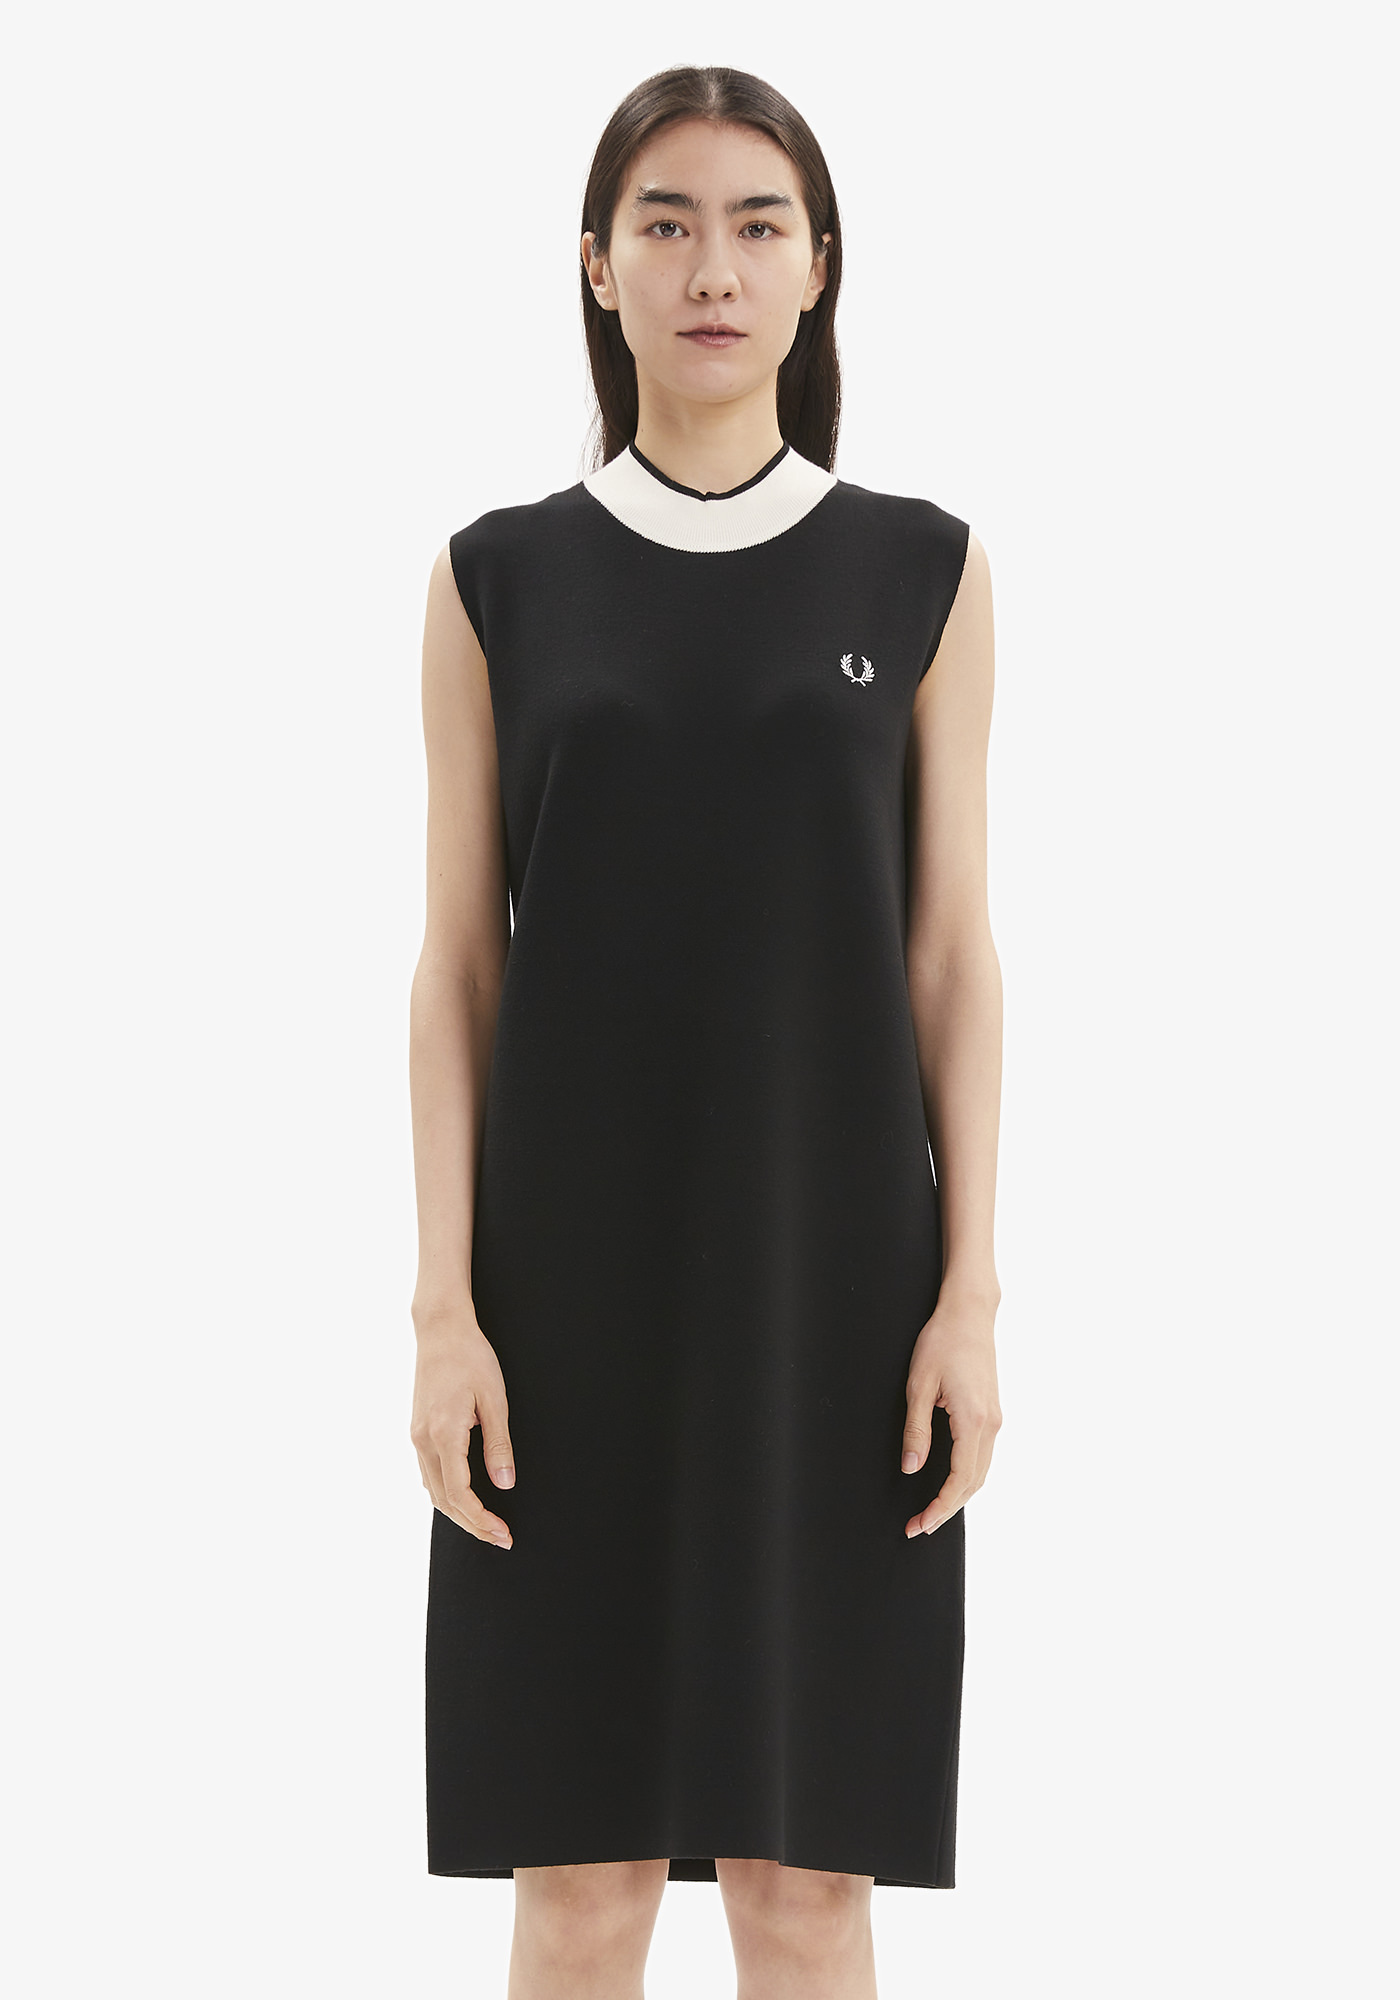 shop fred perry clothing